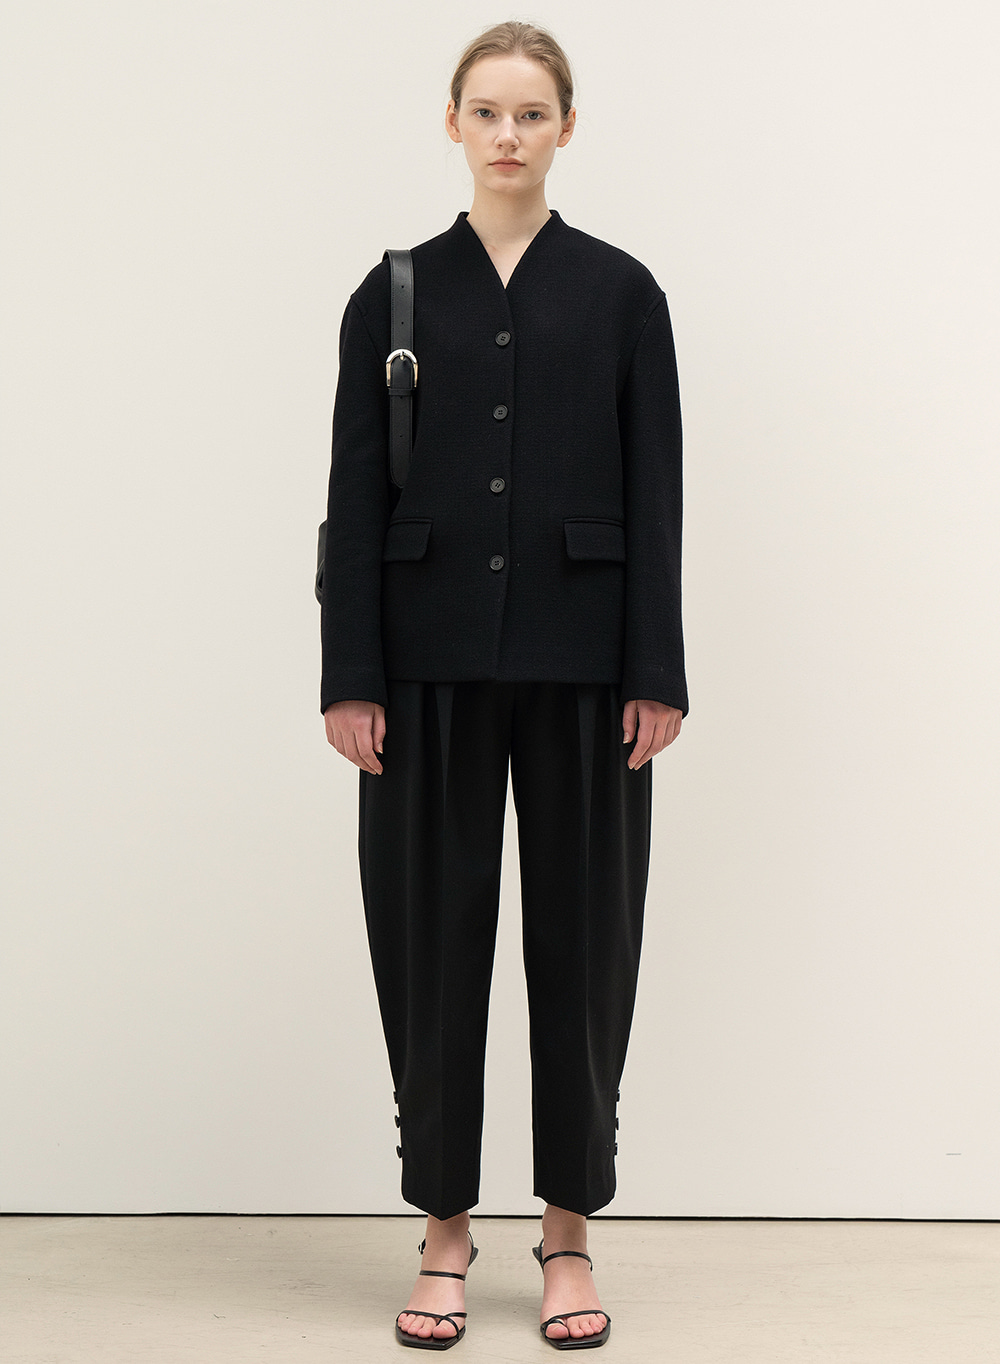 FW20 Rounded Pleats Pants Black